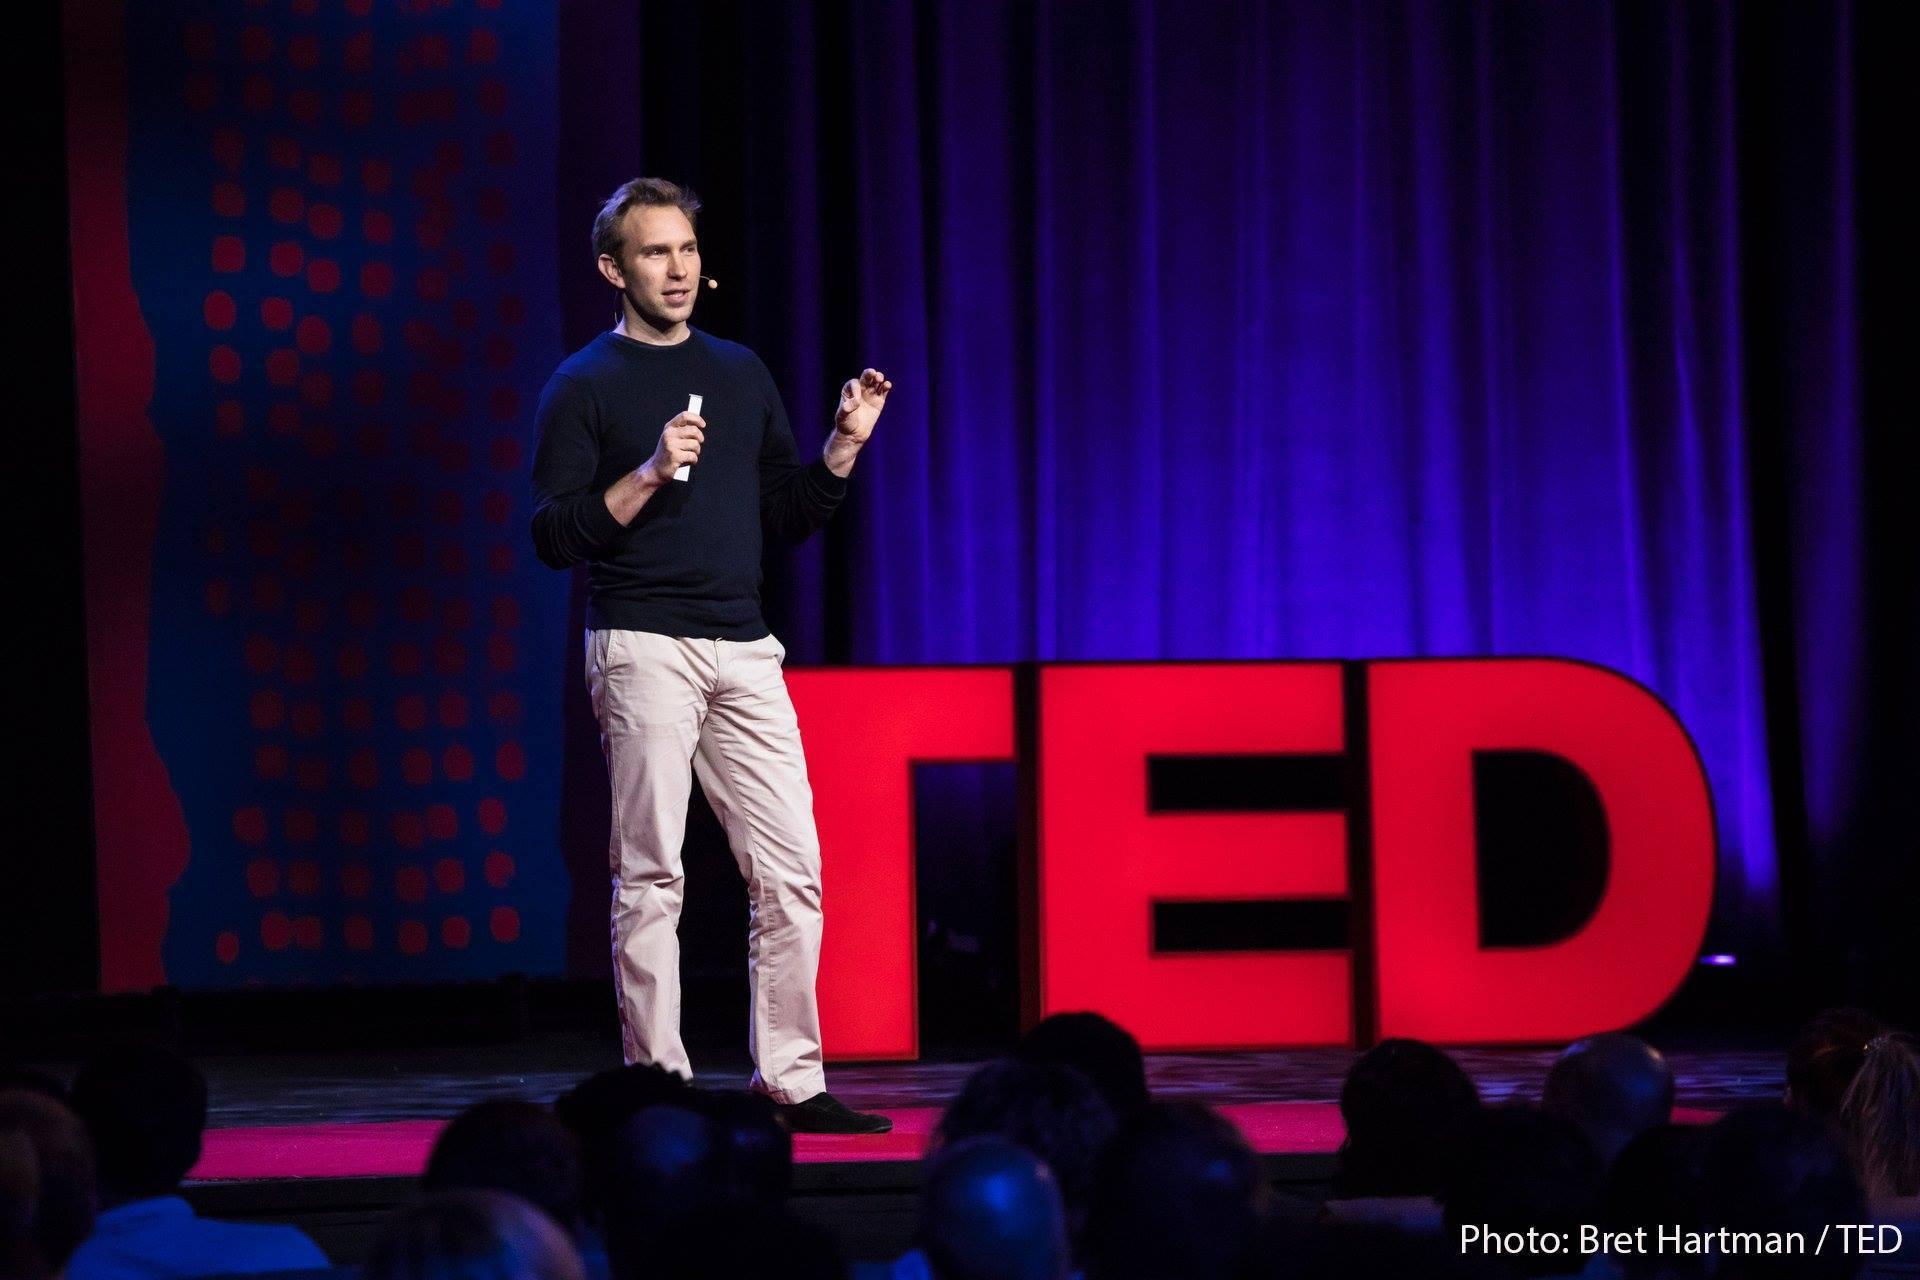 Chris Sheldrick, CEO, giving ted talk